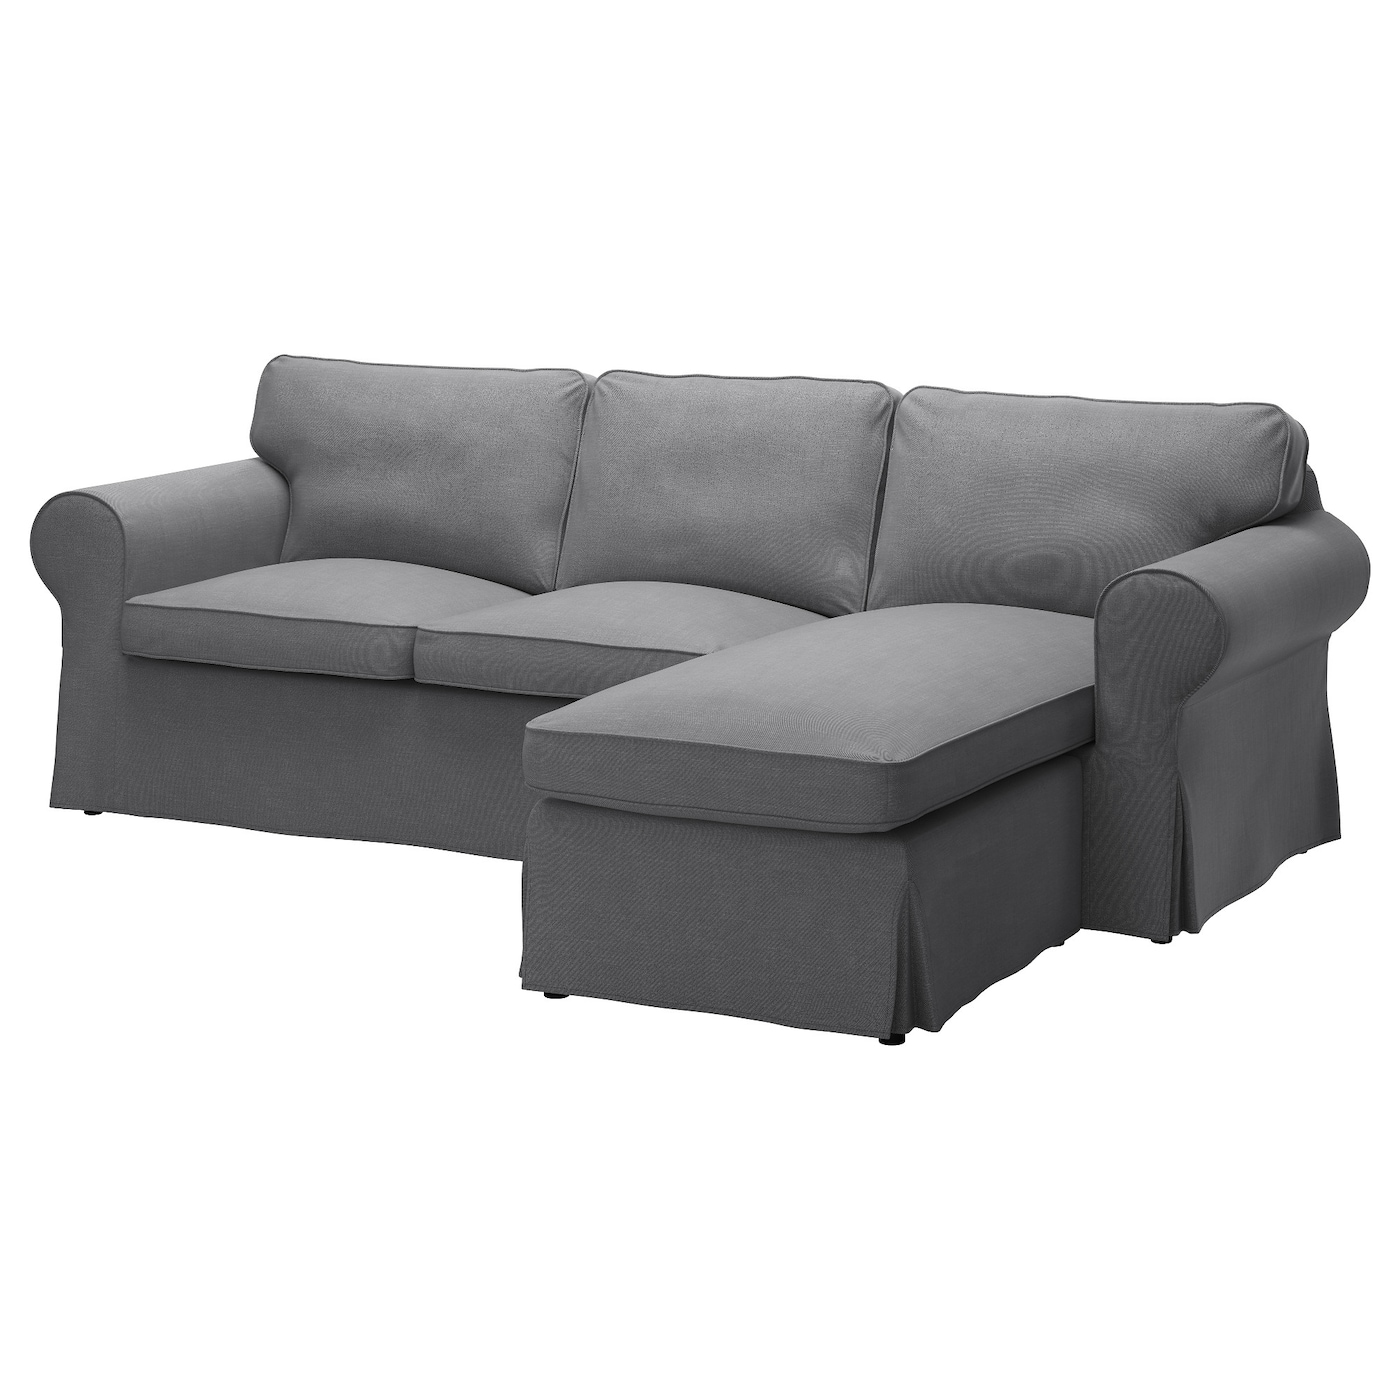 Ektorp two seat sofa and chaise longue nordvalla dark grey for Chaise longue sofa cama